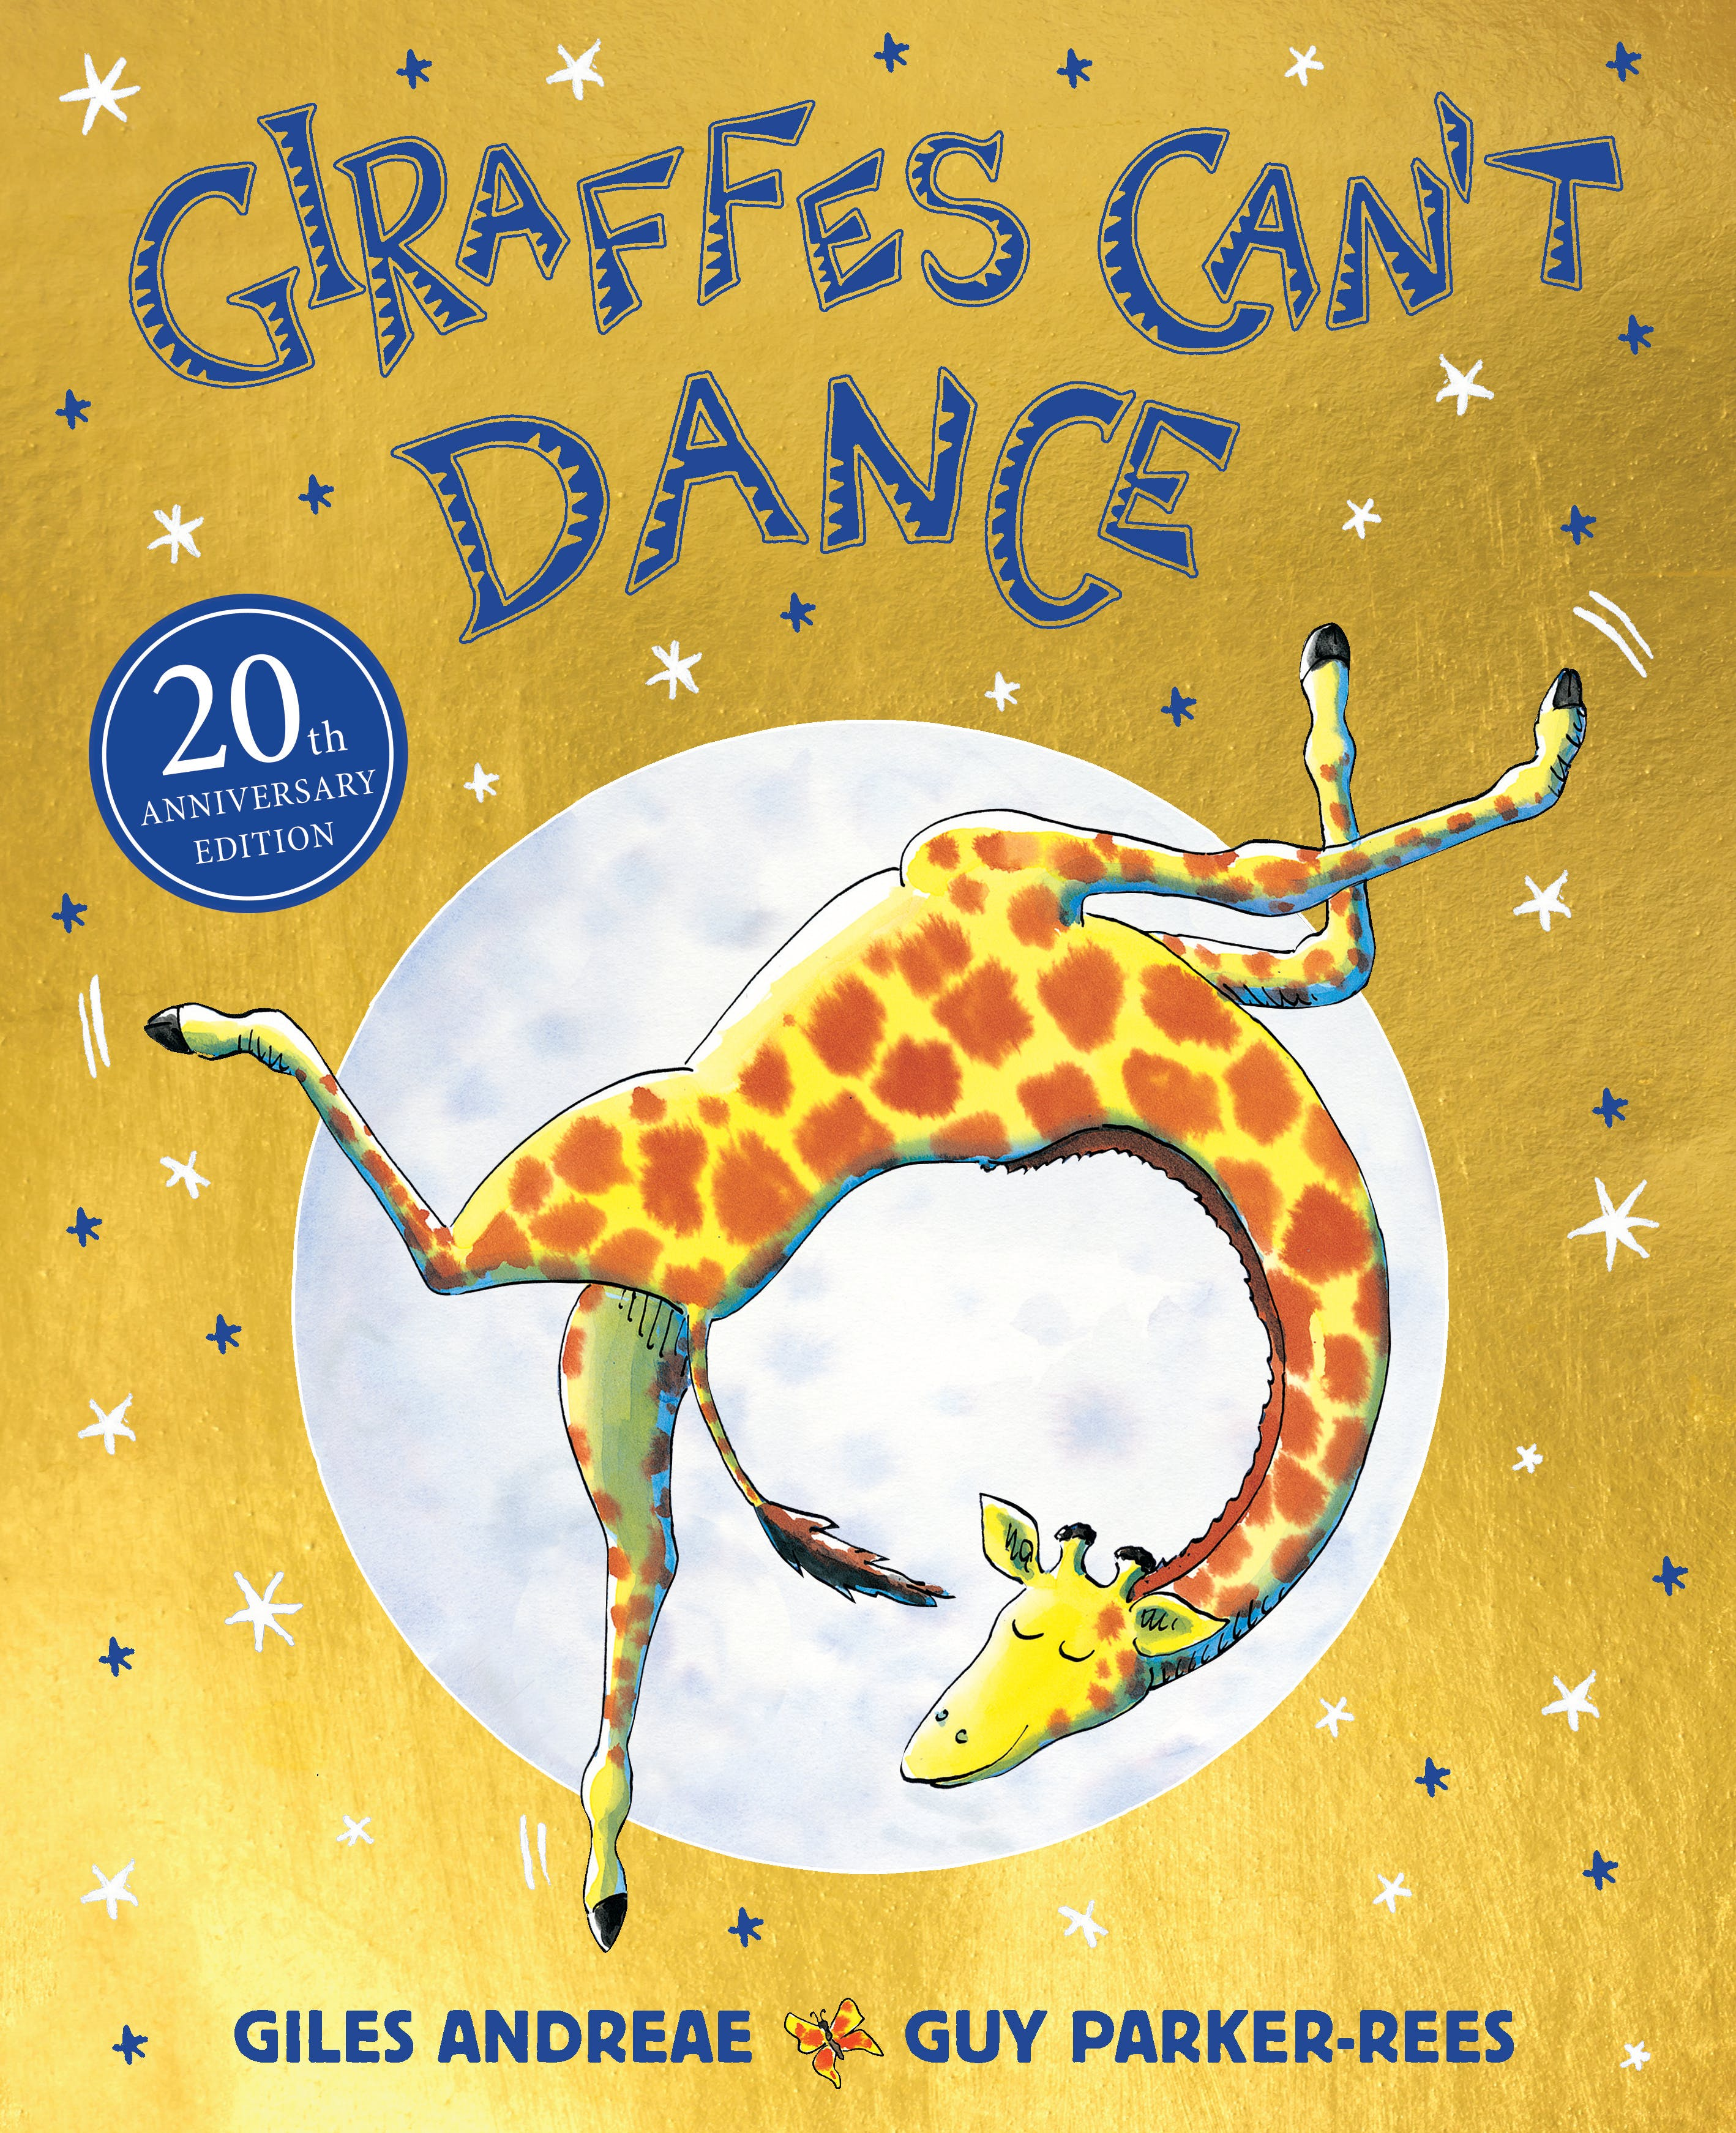 Giraffes Can't Dance by Giles Andreae, illustrated by Guy Parker-Rees